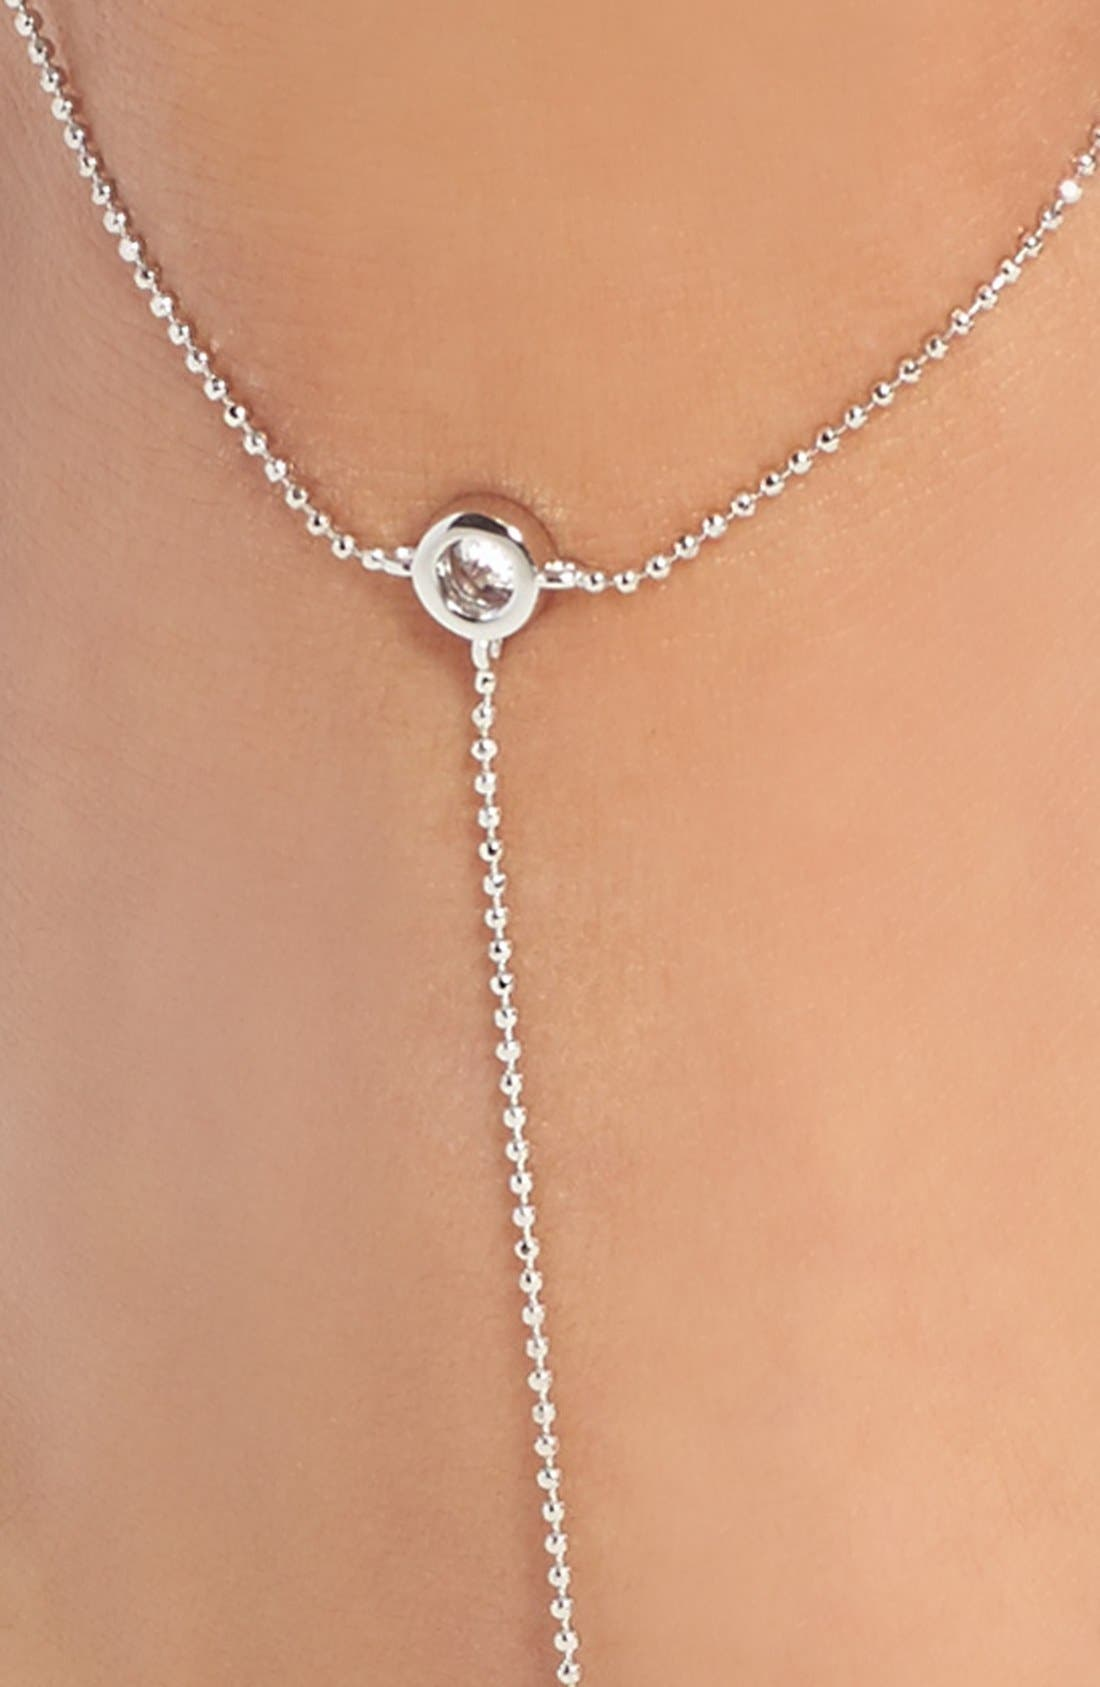 'Salome' Bezel Cubic Zirconia Foot Chain,                             Alternate thumbnail 2, color,                             Silver